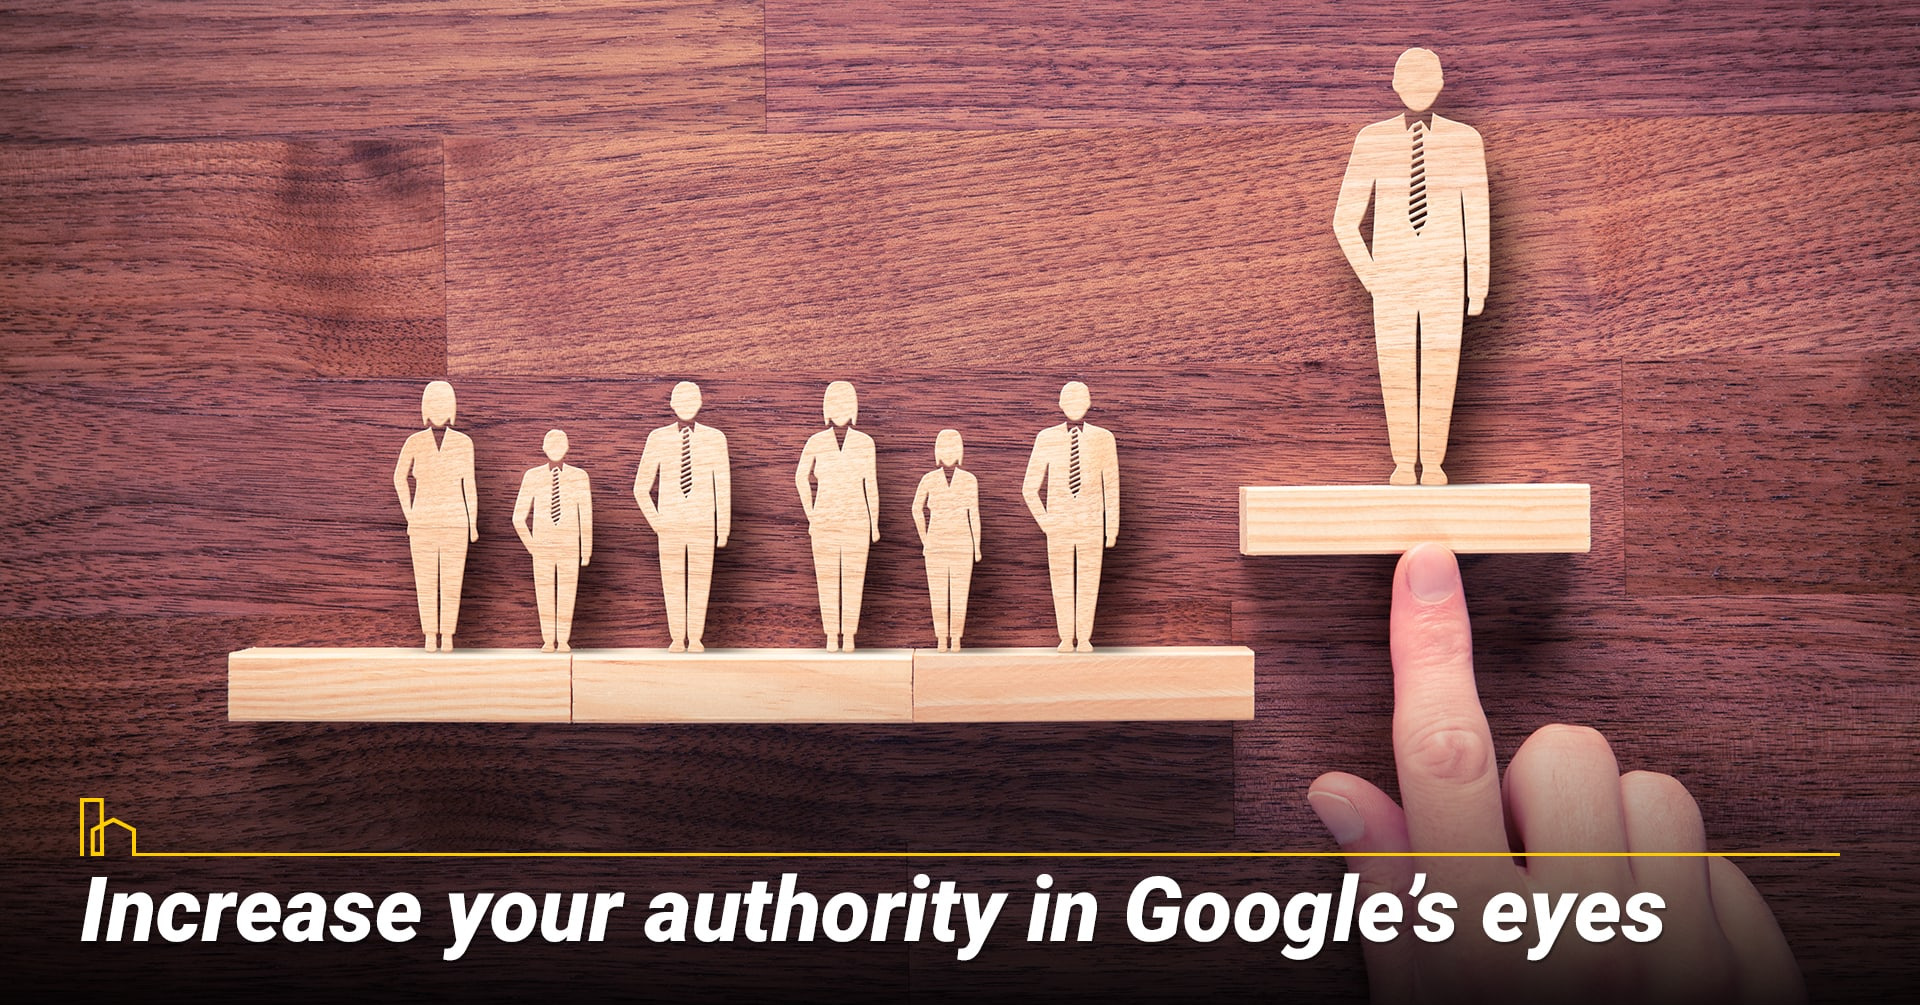 Increase your authority in Google's eyes, improve your ranking in Google